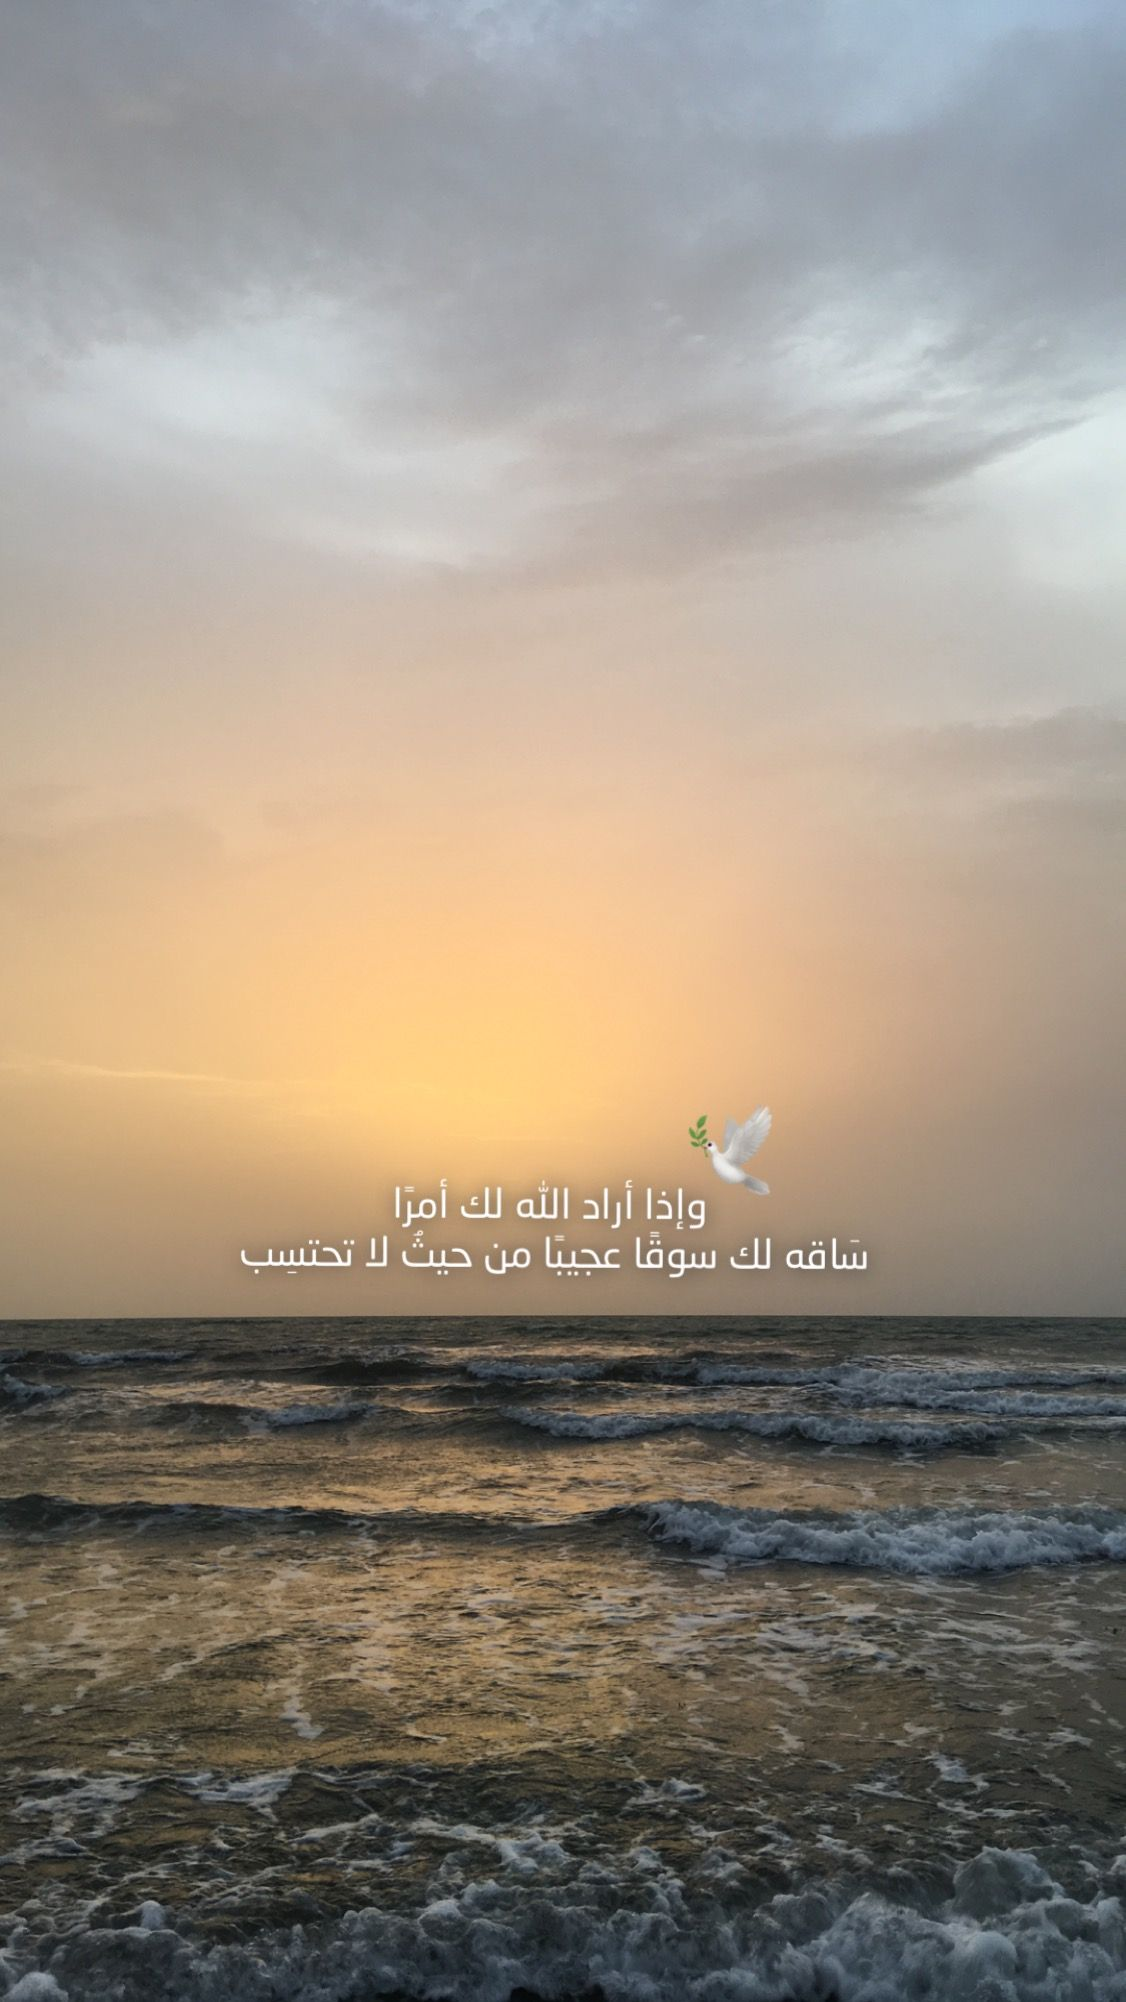 Pin By Cvbnm On استلهم لألهم Beautiful Arabic Words Islamic Pictures Unique Quote